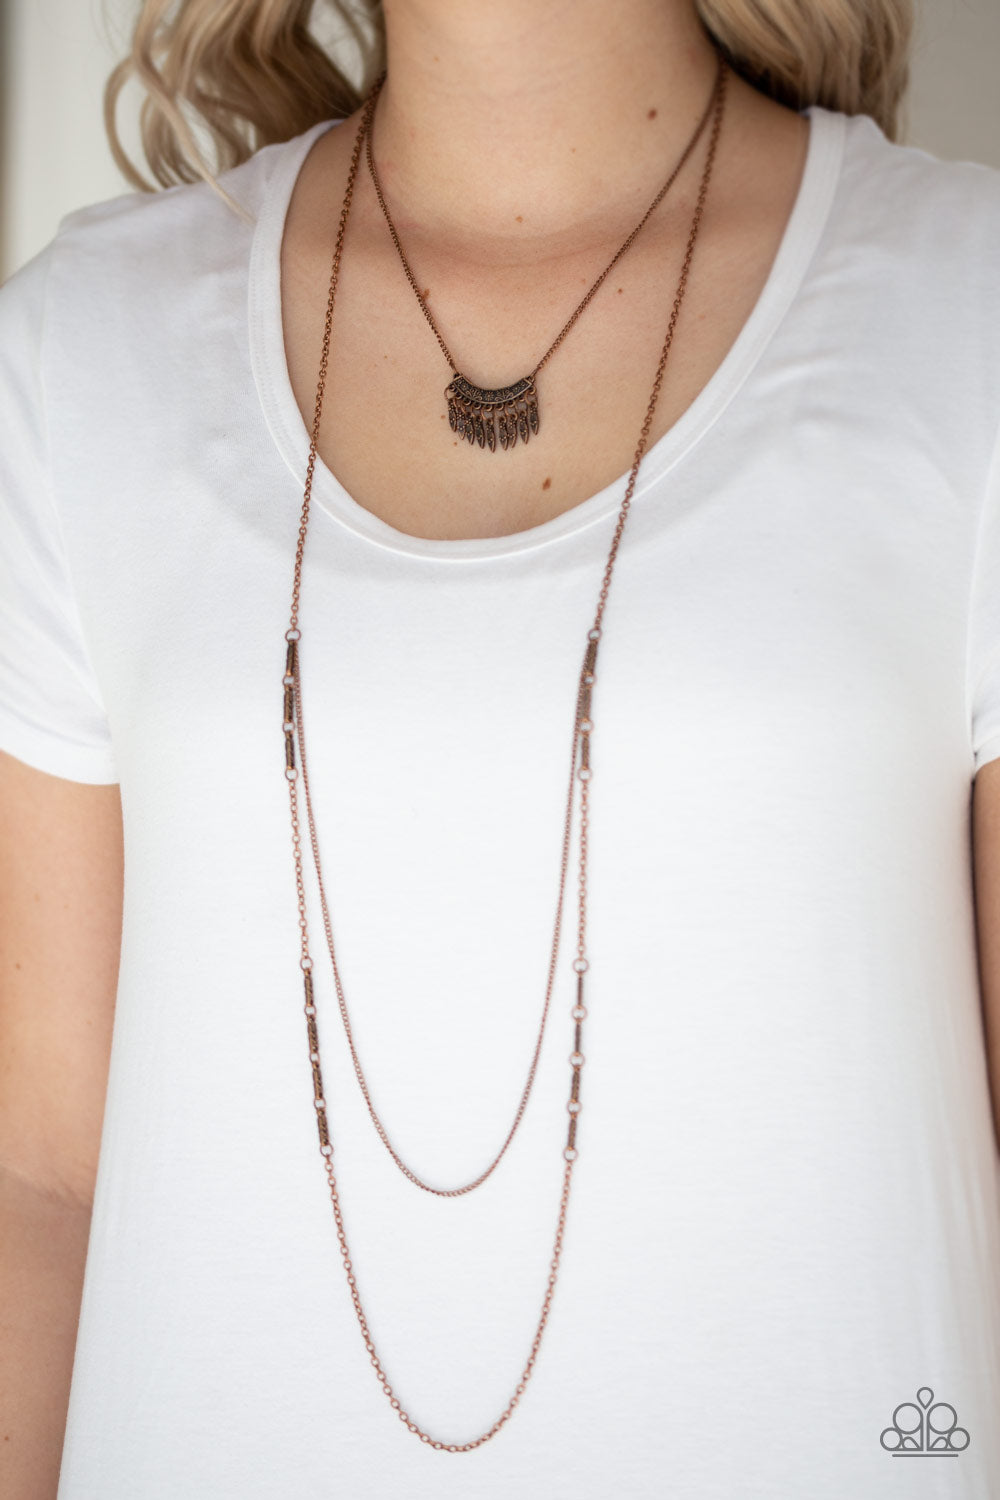 Homestead Harvest - Copper Necklace - Paparazzi Accessories